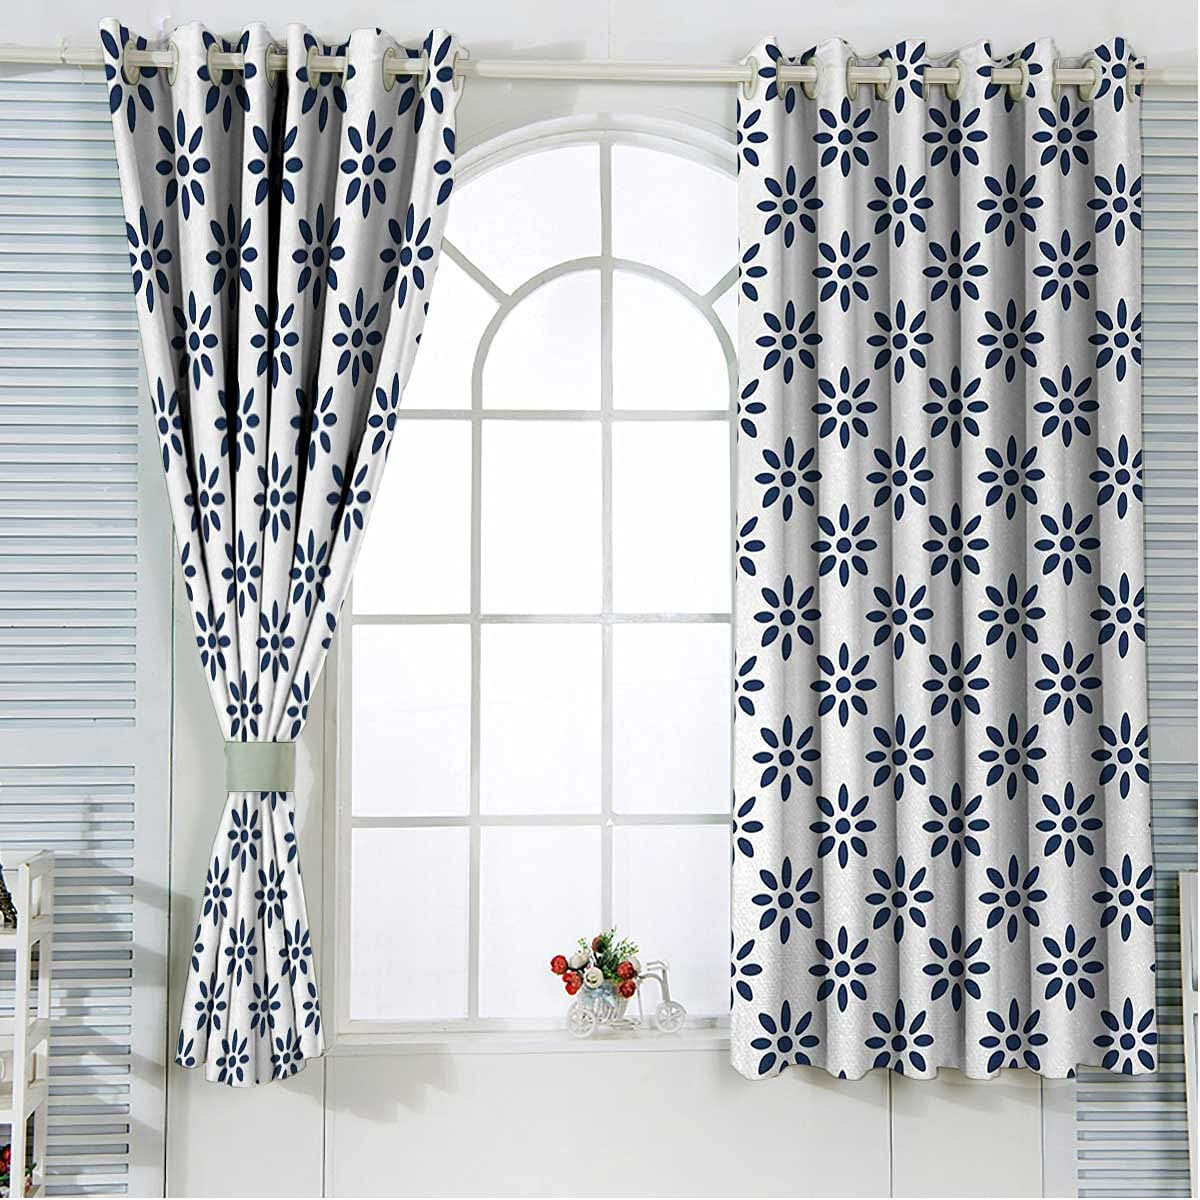 Floral Small Challenge the lowest price of Japan Curtains Max 90% OFF for Windows 63 White Indigo Length Inches